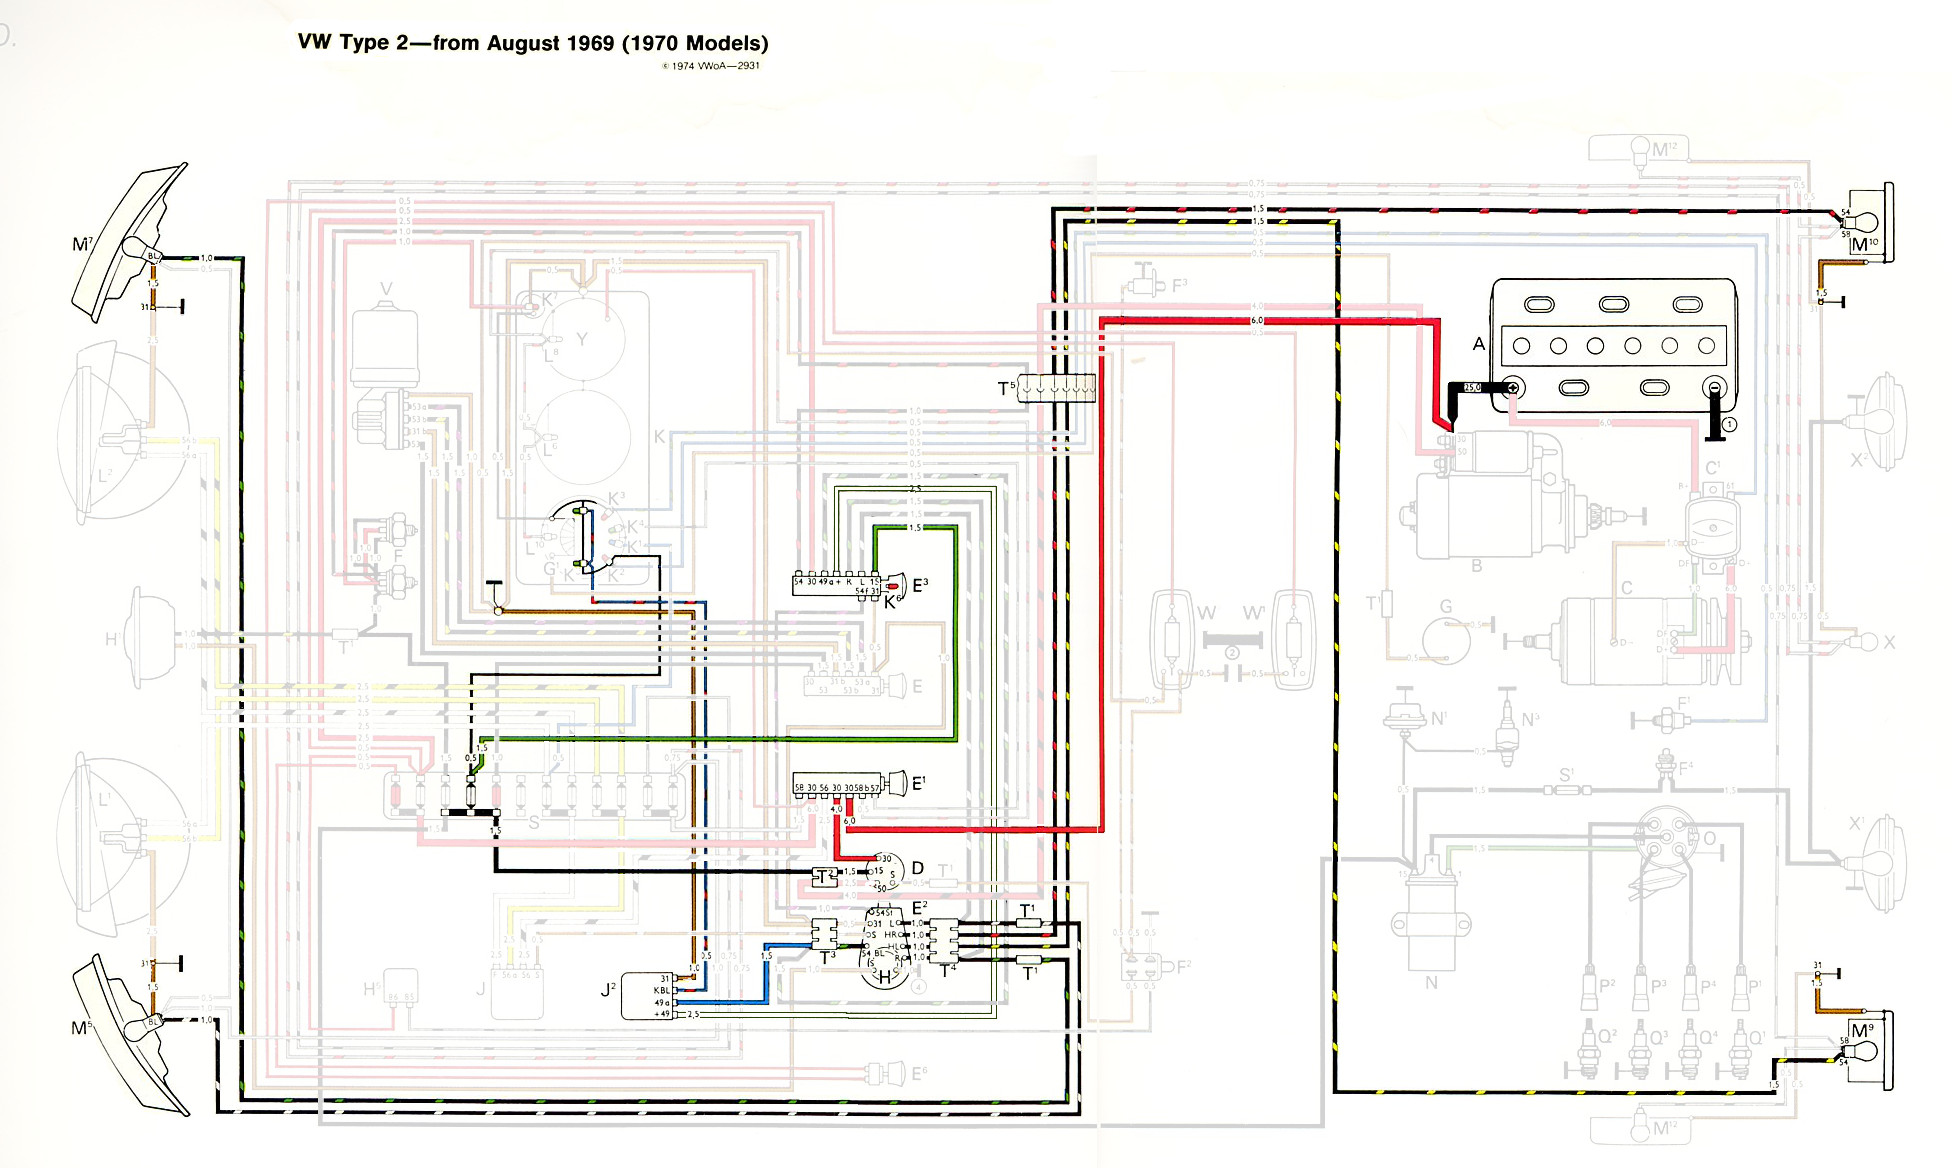 Eagle Bus Wiring Diagram 1973 Sample Function Generator Circuit Automotivecircuit Thesamba Com Type 2 Diagrams 1971 Volkswagen